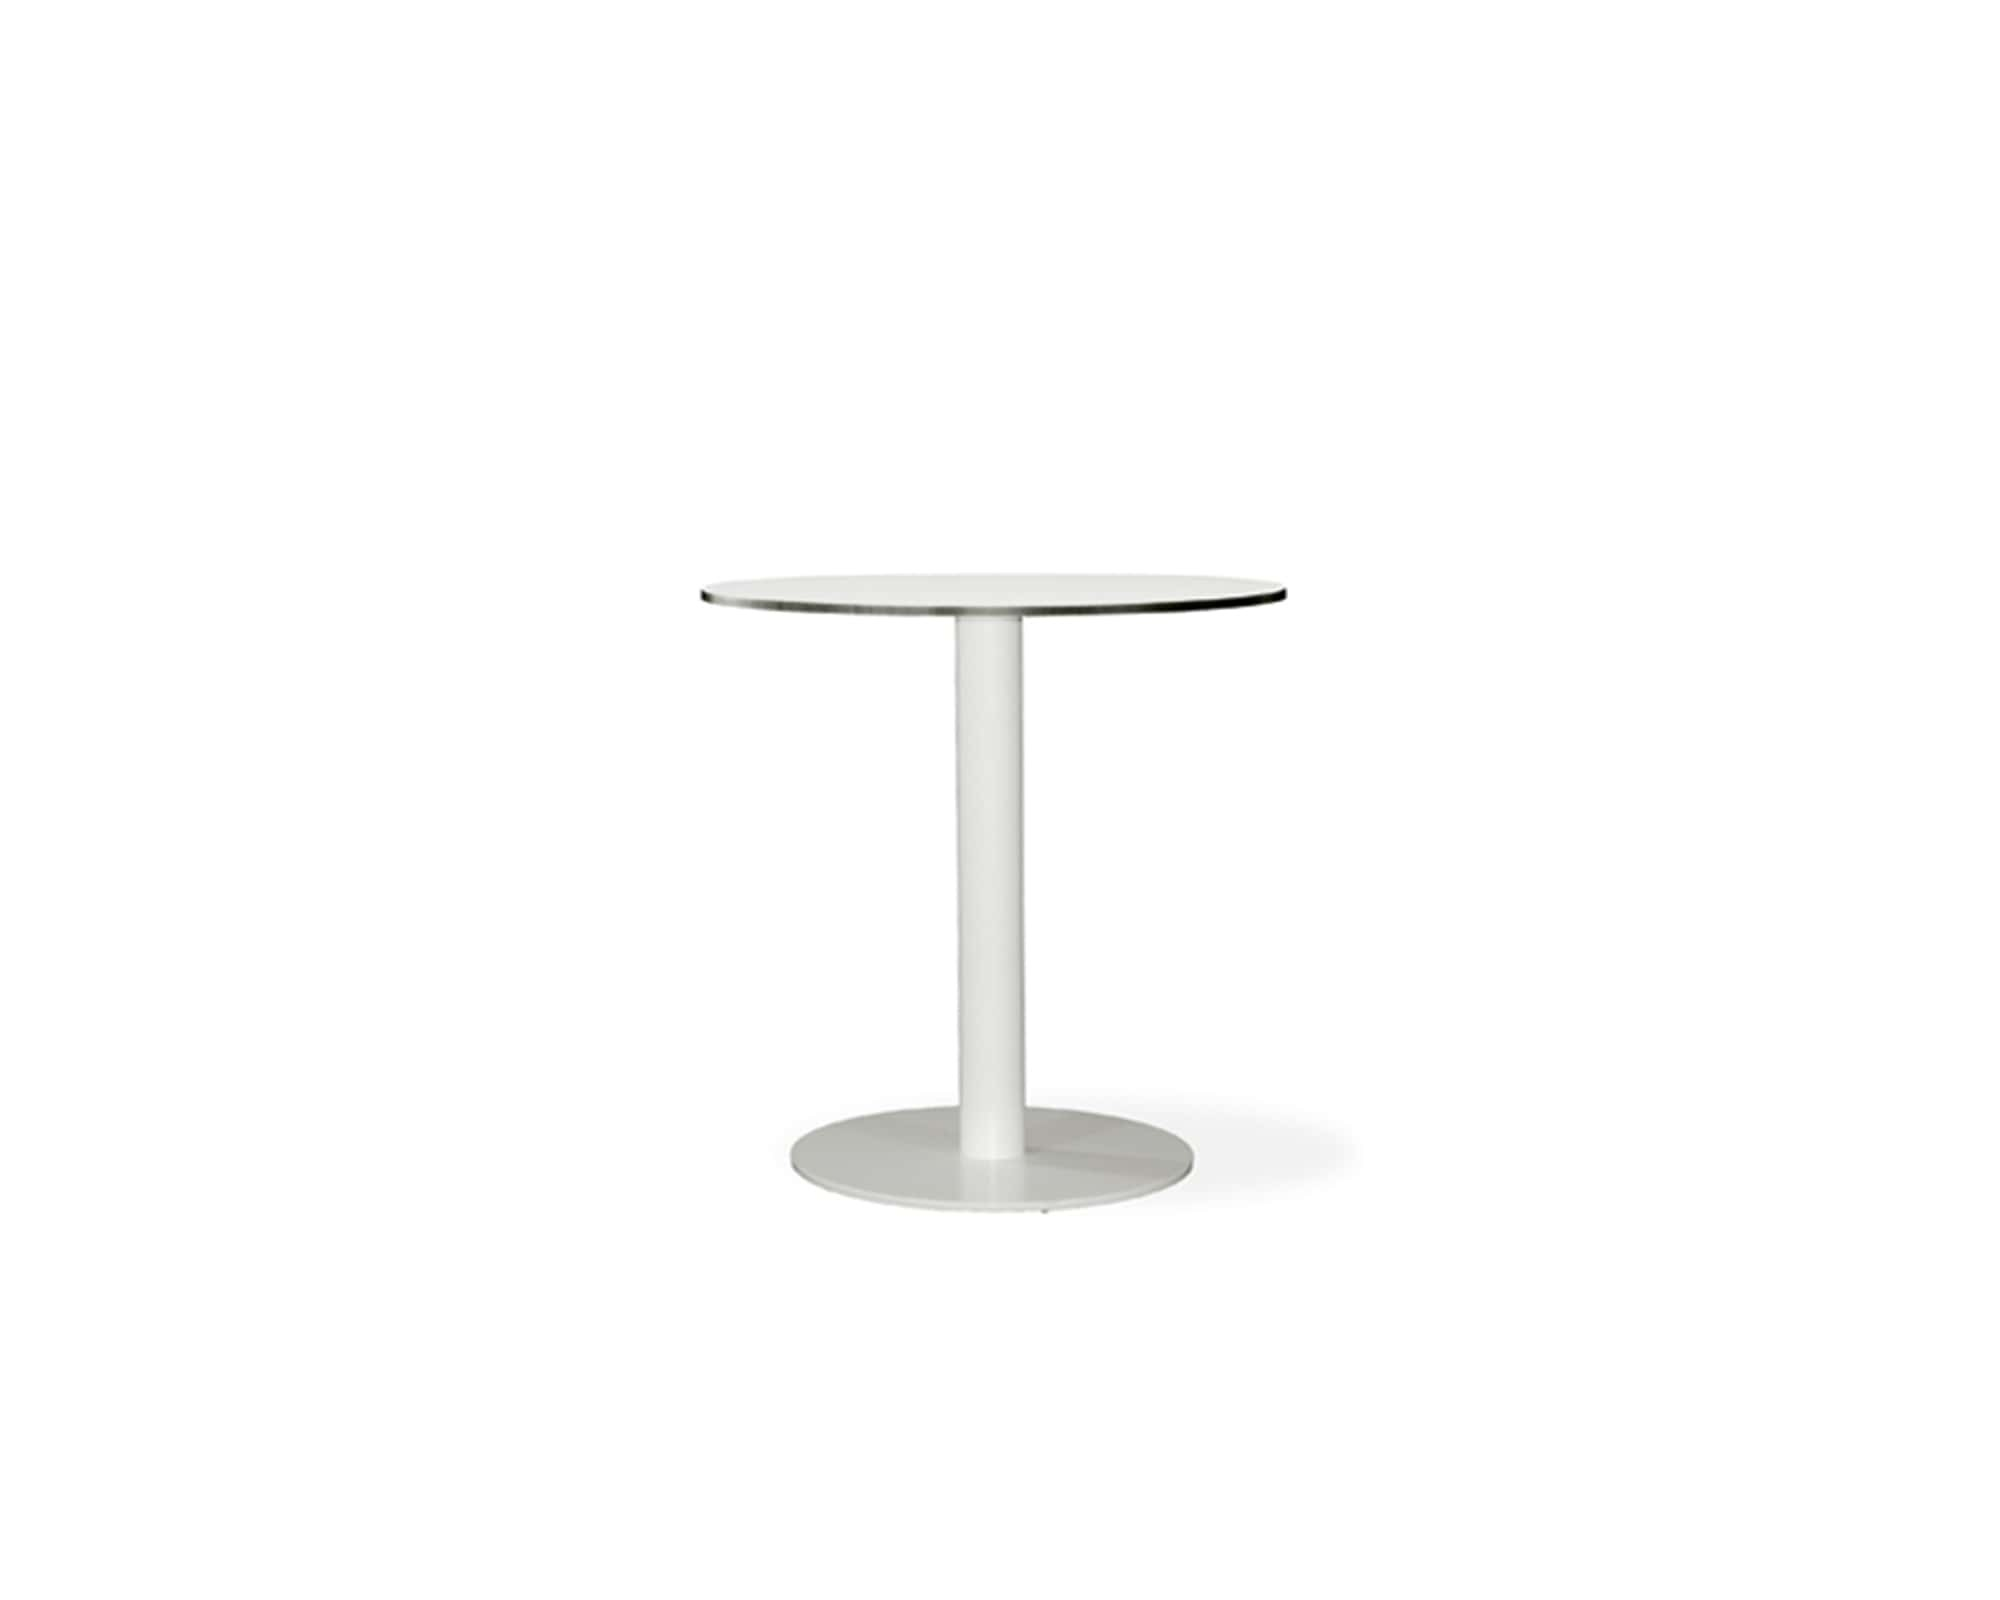 Foot Dining Table with Trespa® HPL Top